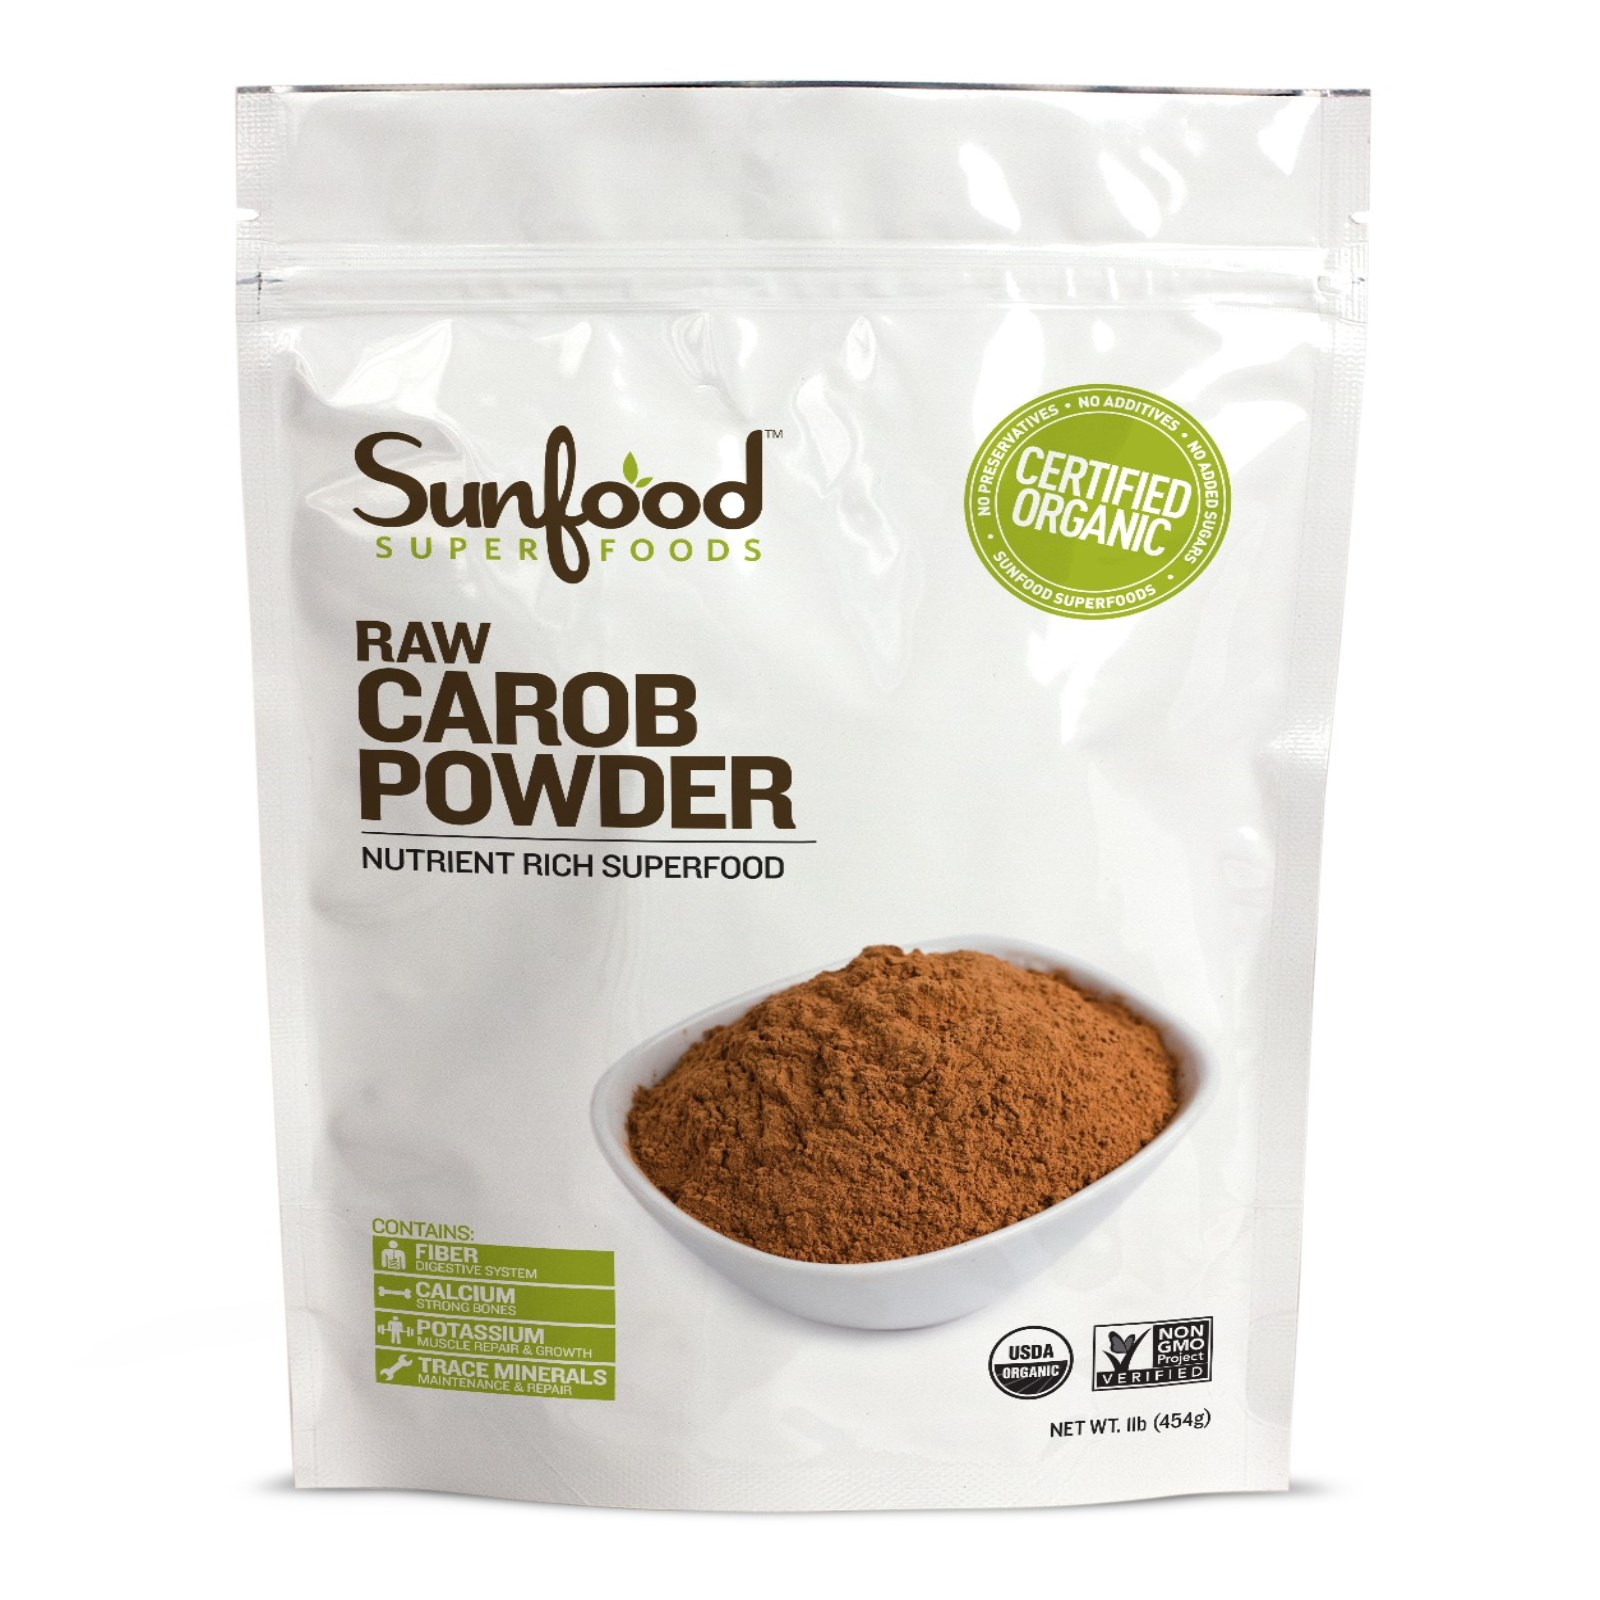 How To Make Chocolate Using Carob Powder